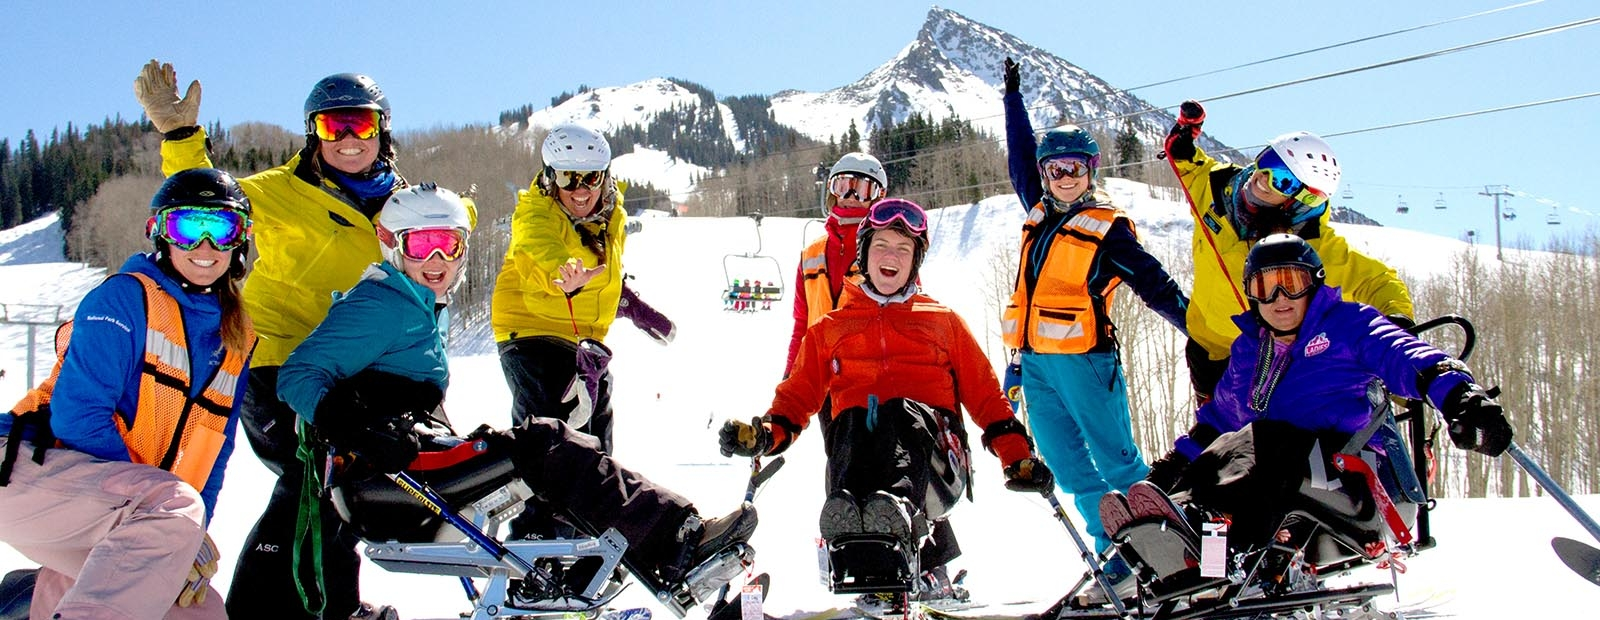 Group of adaptive skiers on Mount Crested Butte